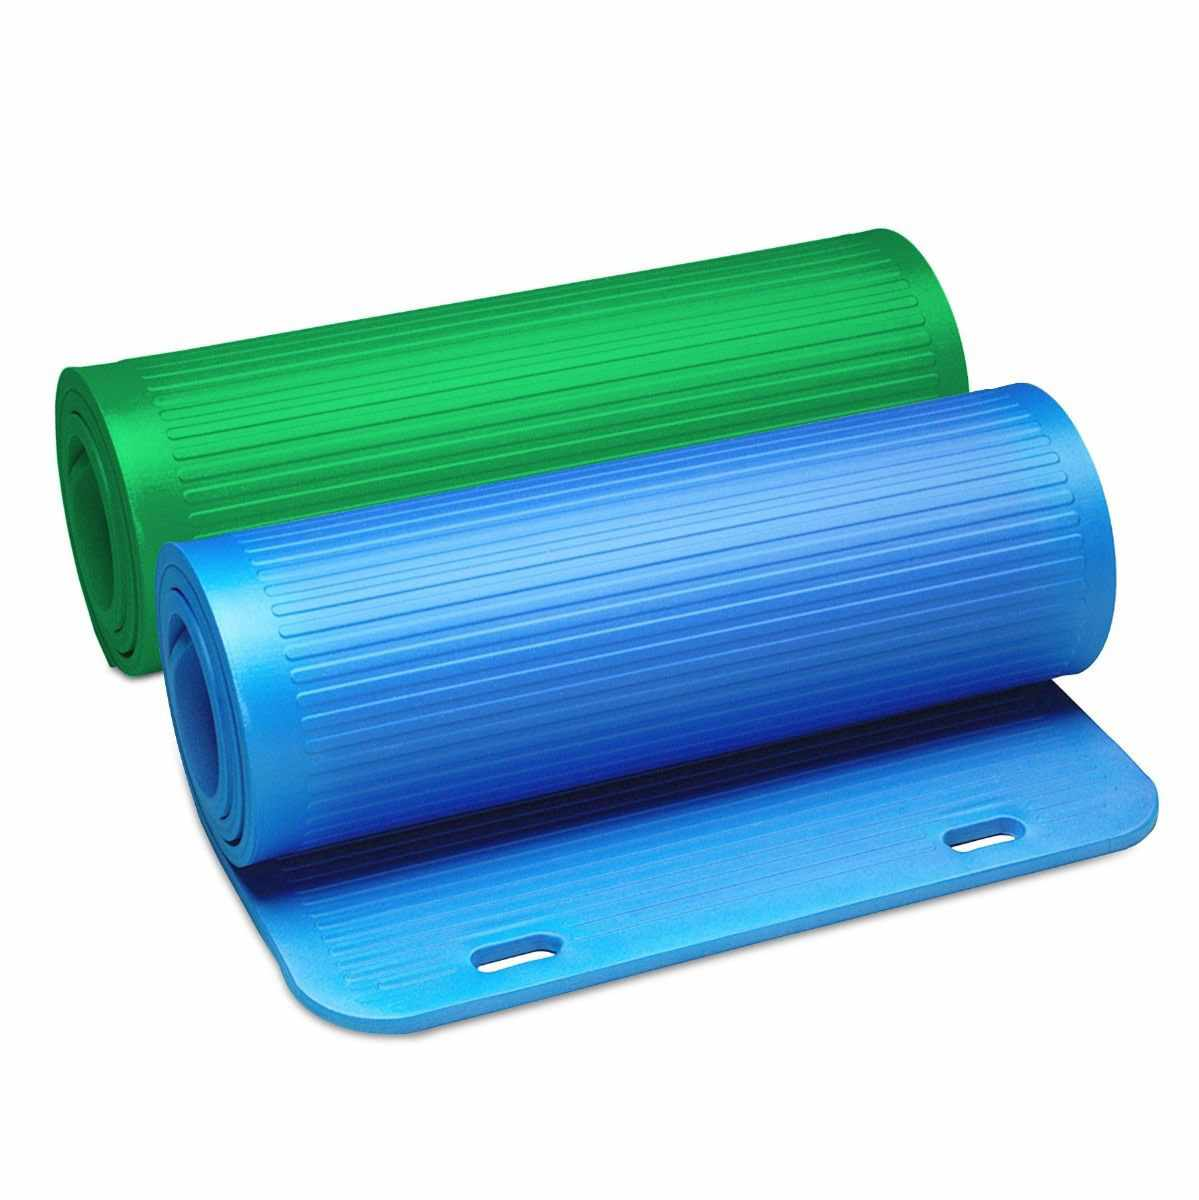 TheraBand Exercise Mats